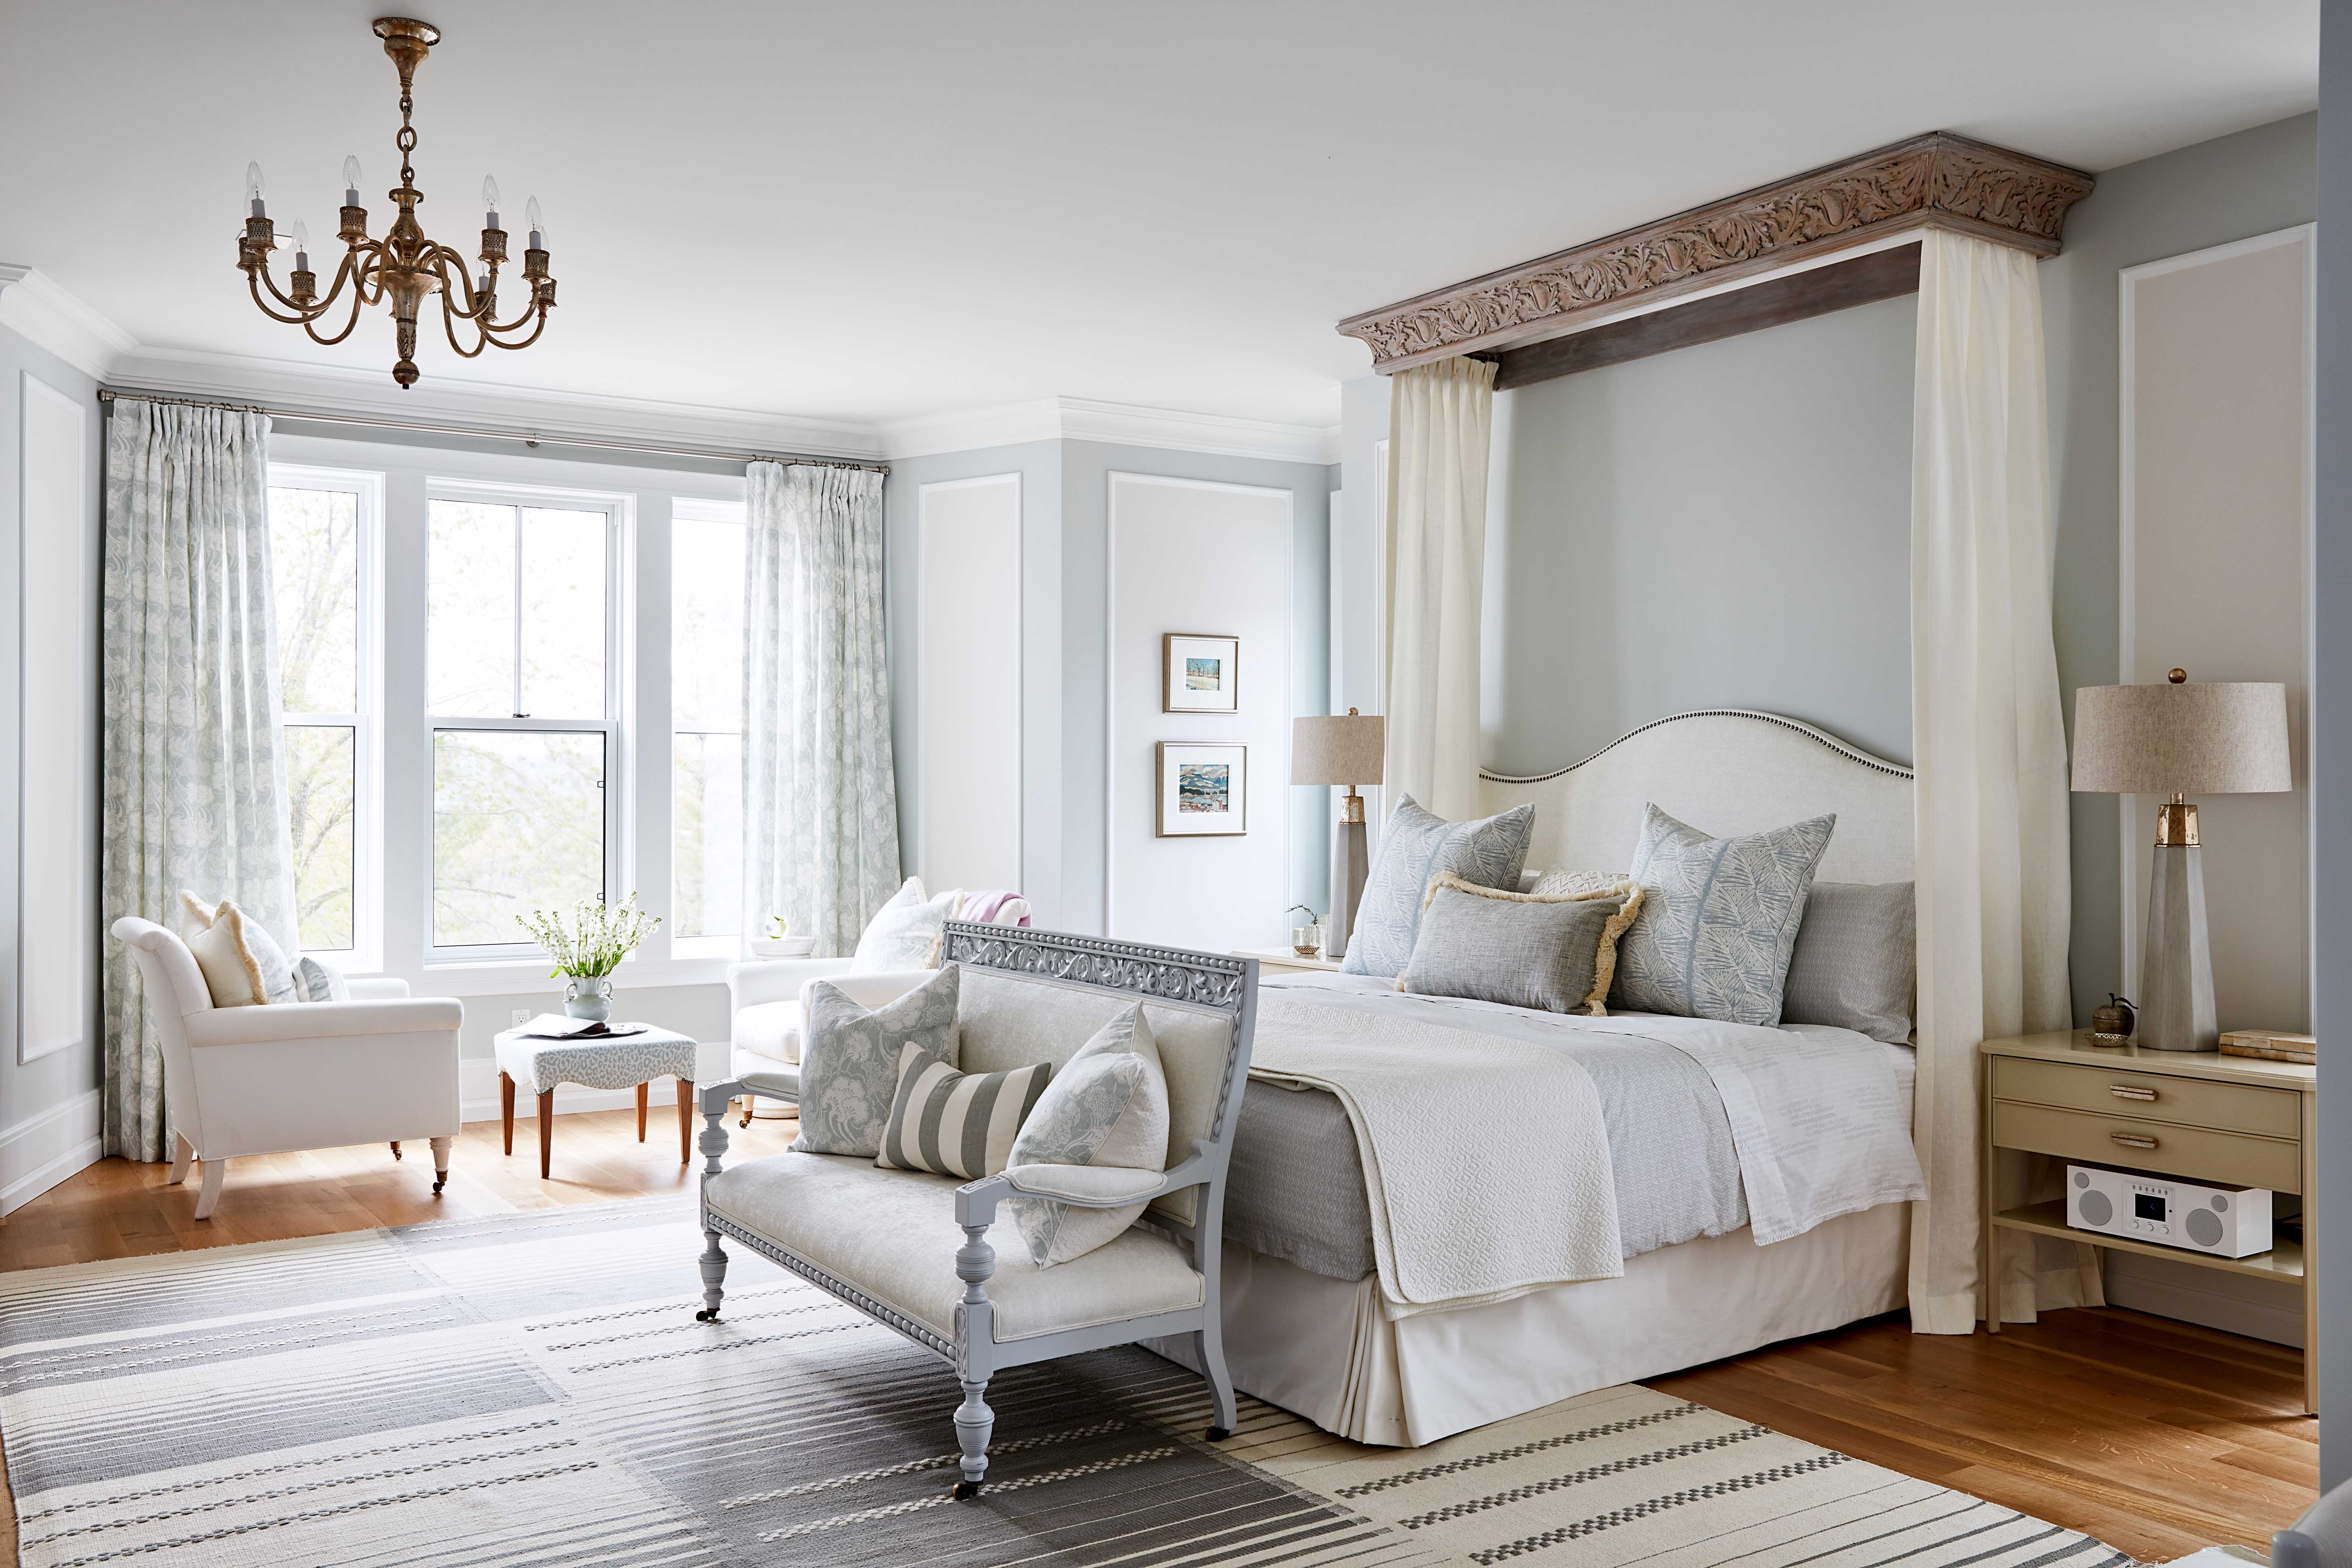 Elegant master suite in Sarah Richardson off the grid house with blue grey palette and ceiling canopy on bed